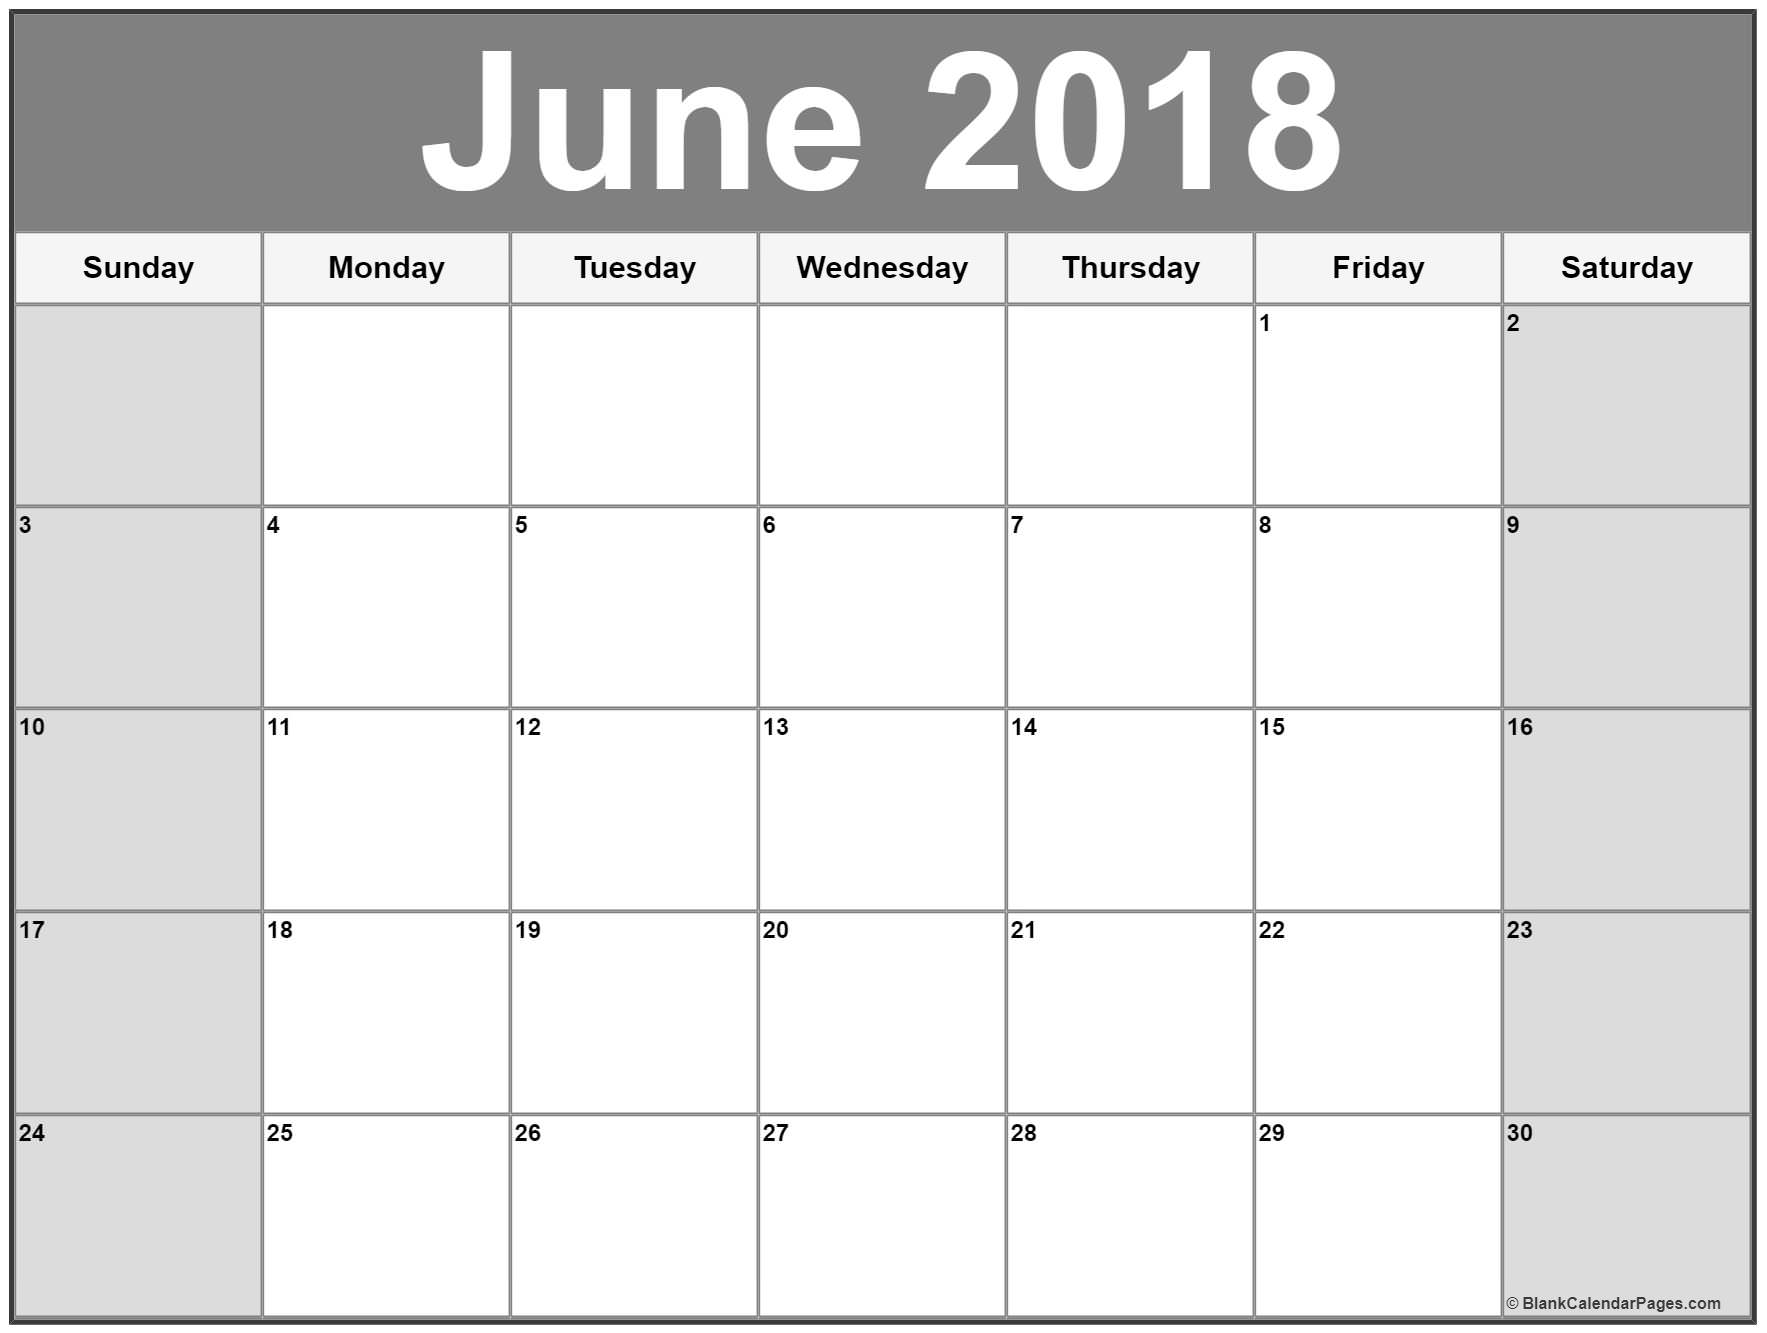 June 2018 Blank Calendar Download